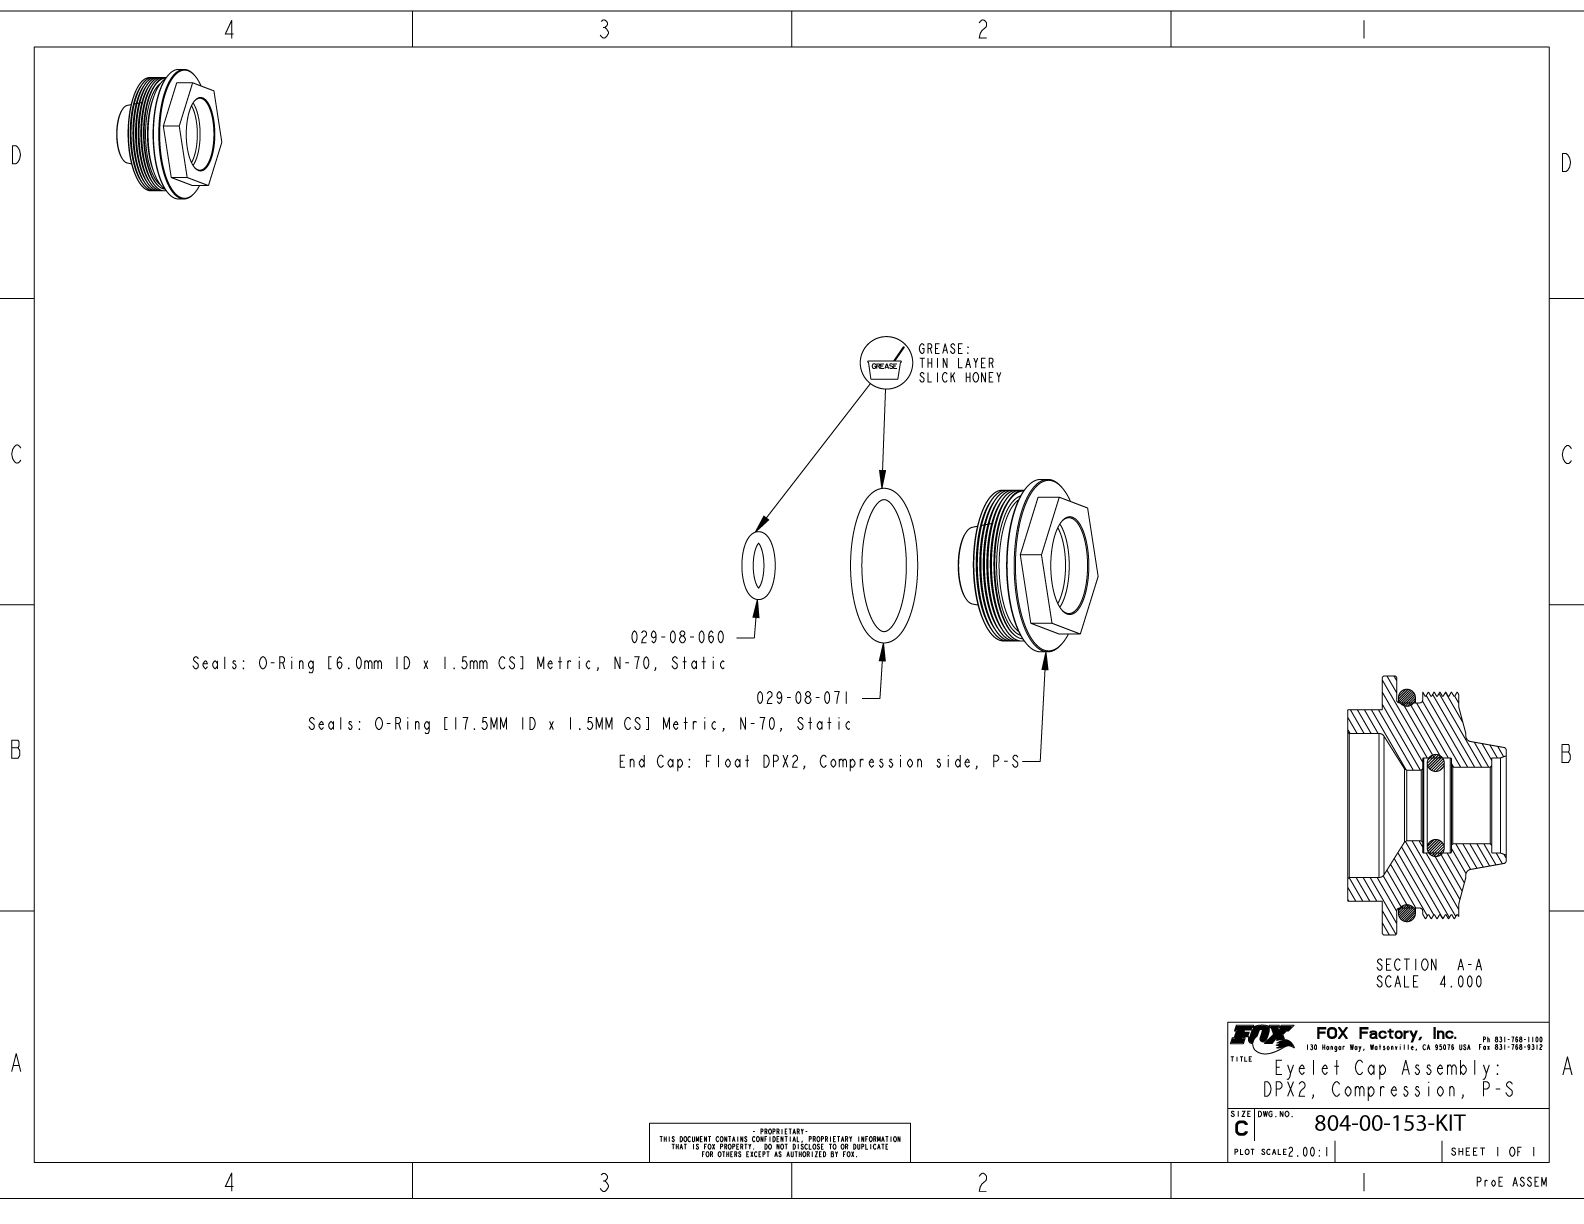 hight resolution of 804 00 153 kit eyelet cap assembly dpx2 compression p s